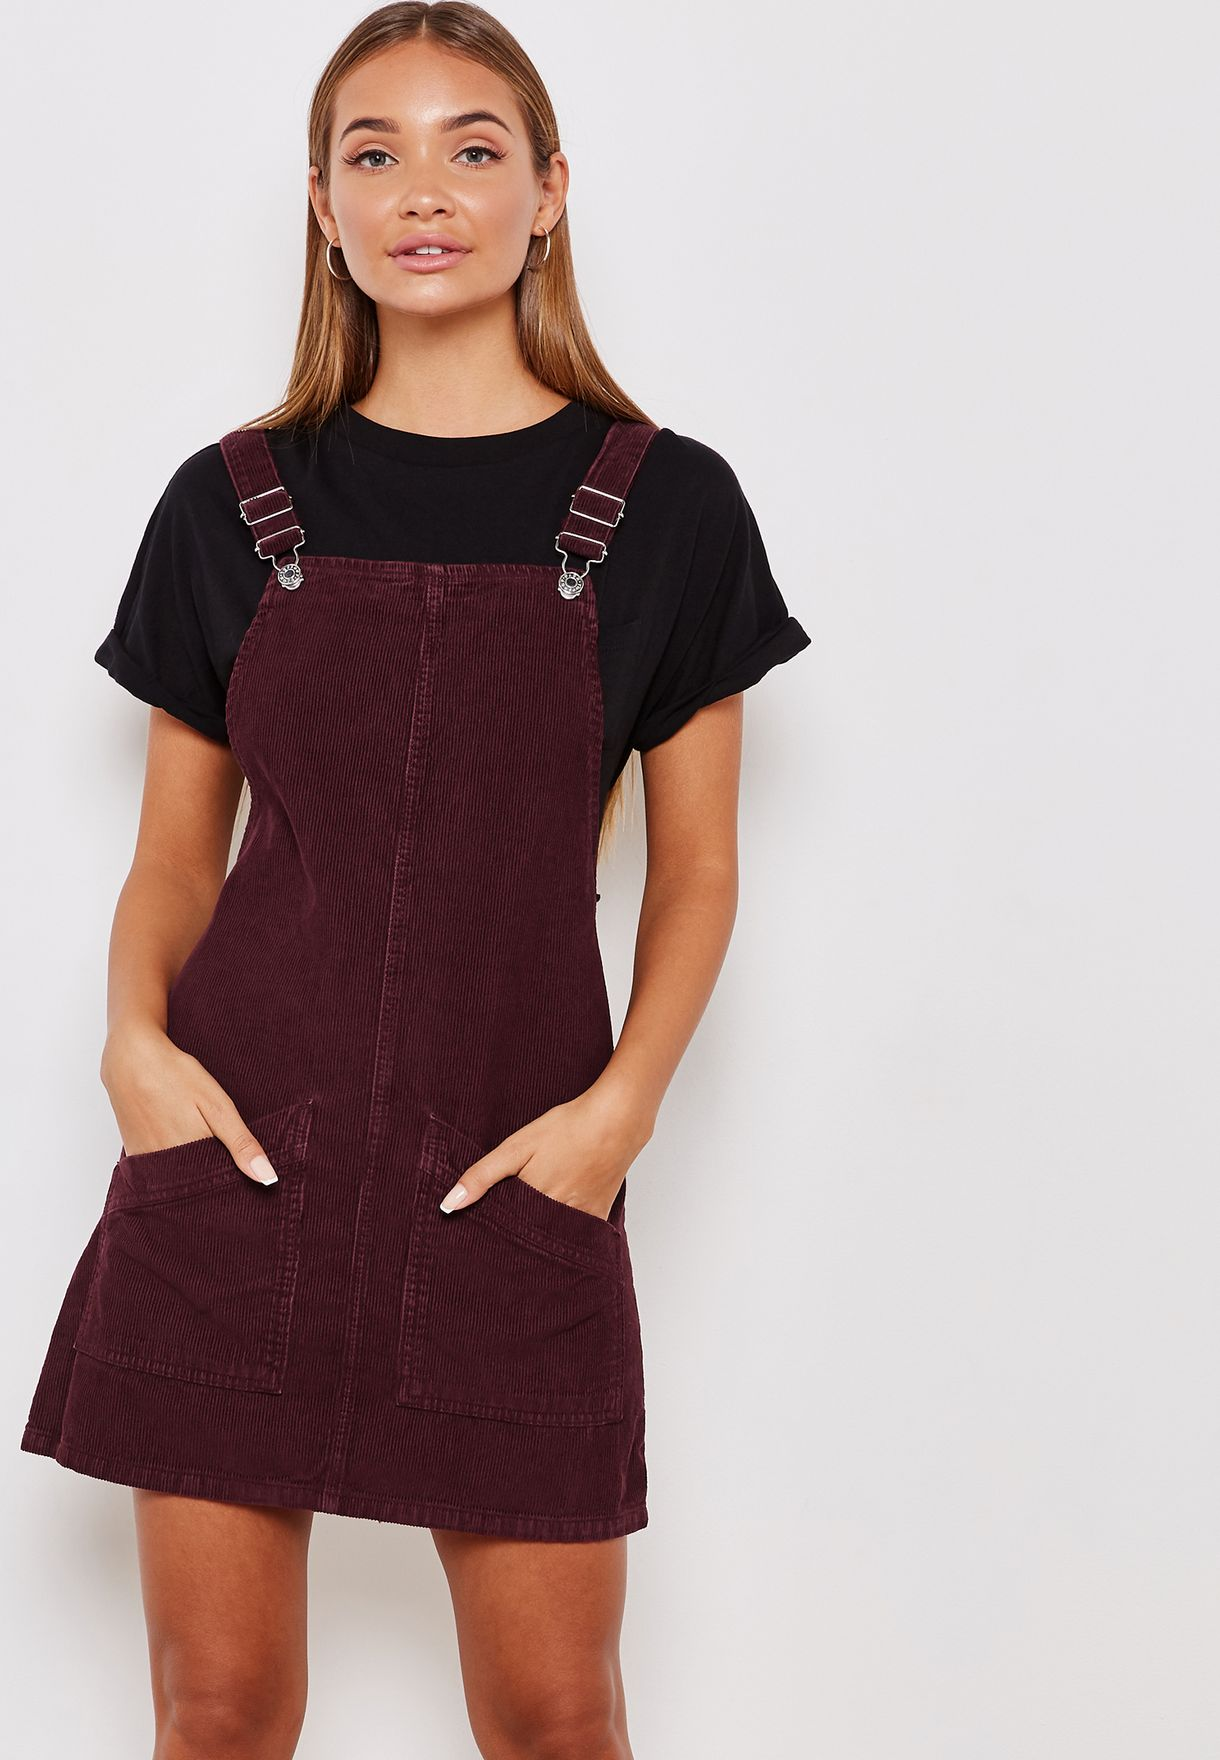 1bba4e75ee Shop Topshop red Corduroy Dungaree Dress 05G14NBRG for Women in UAE ...